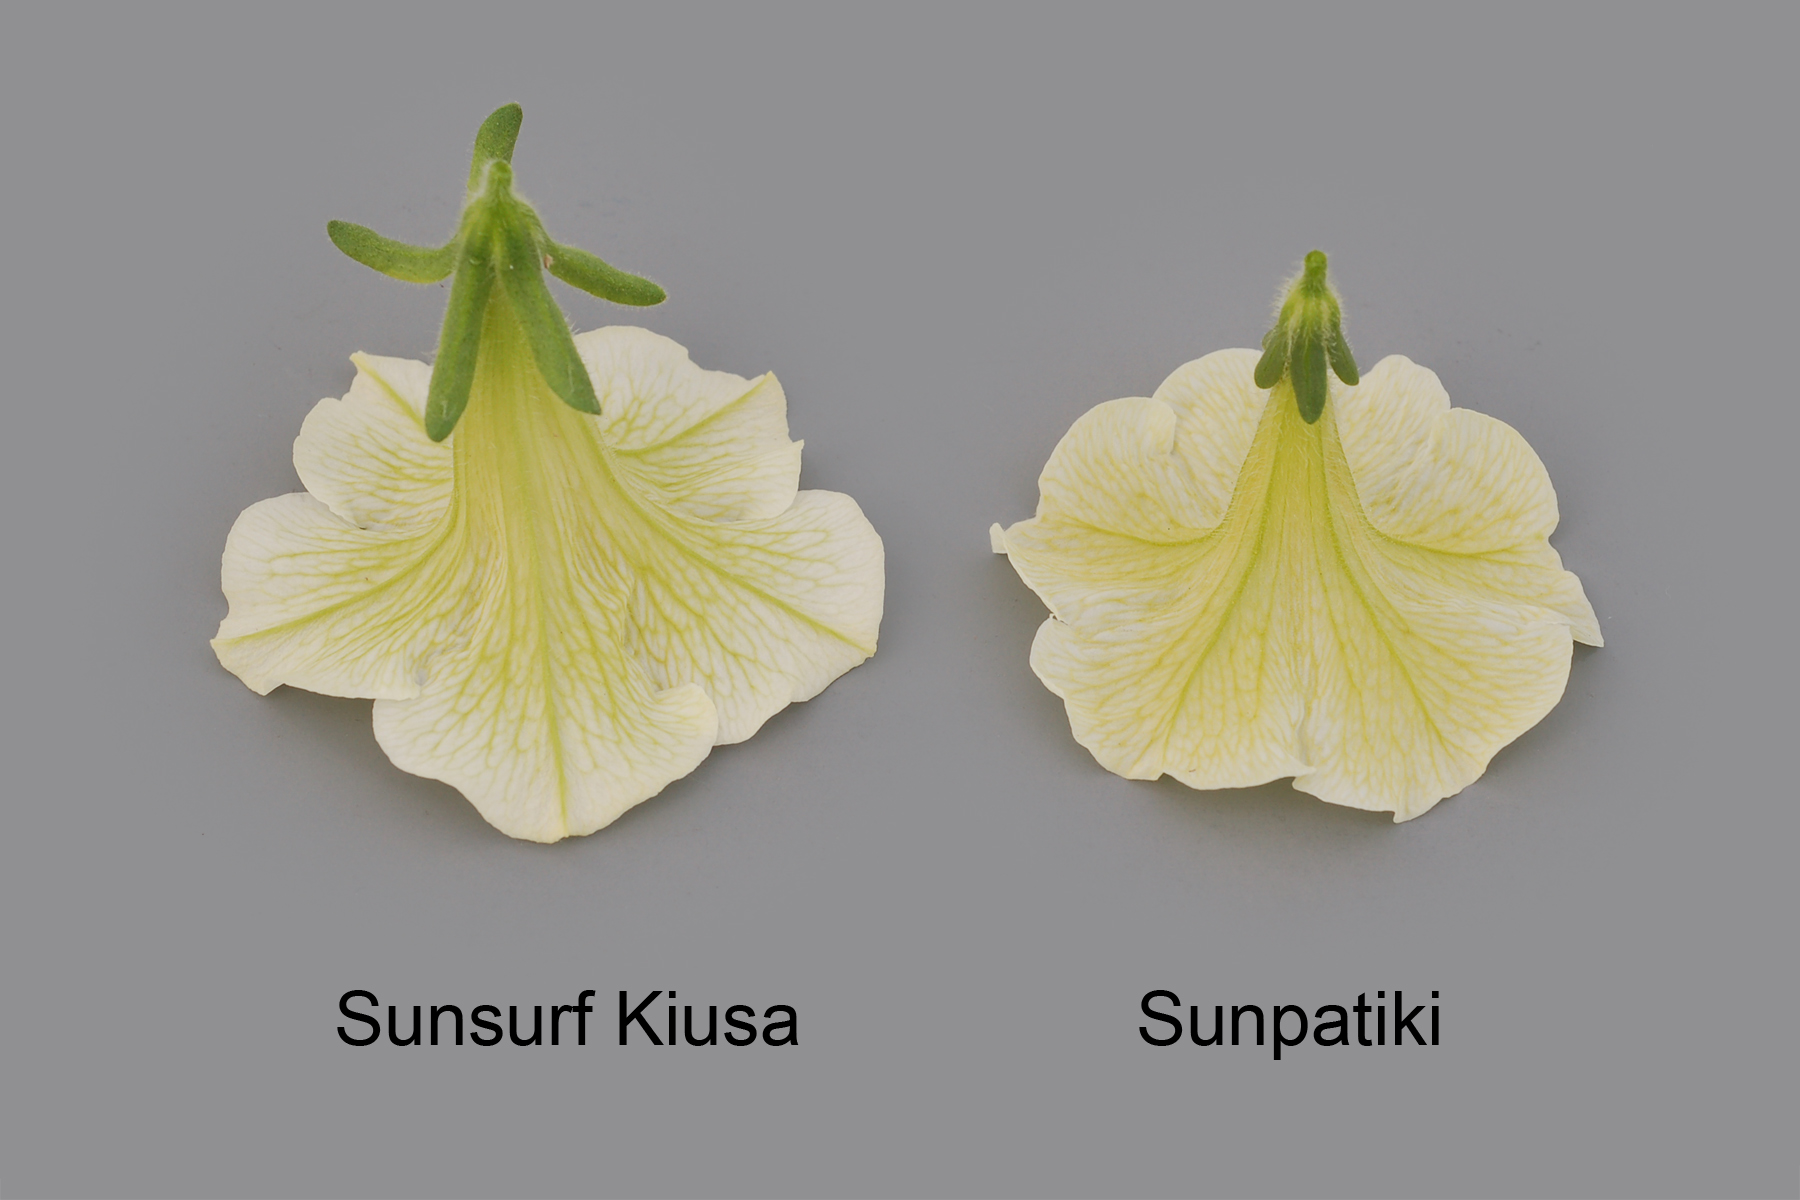 Sunsurf Kiusa